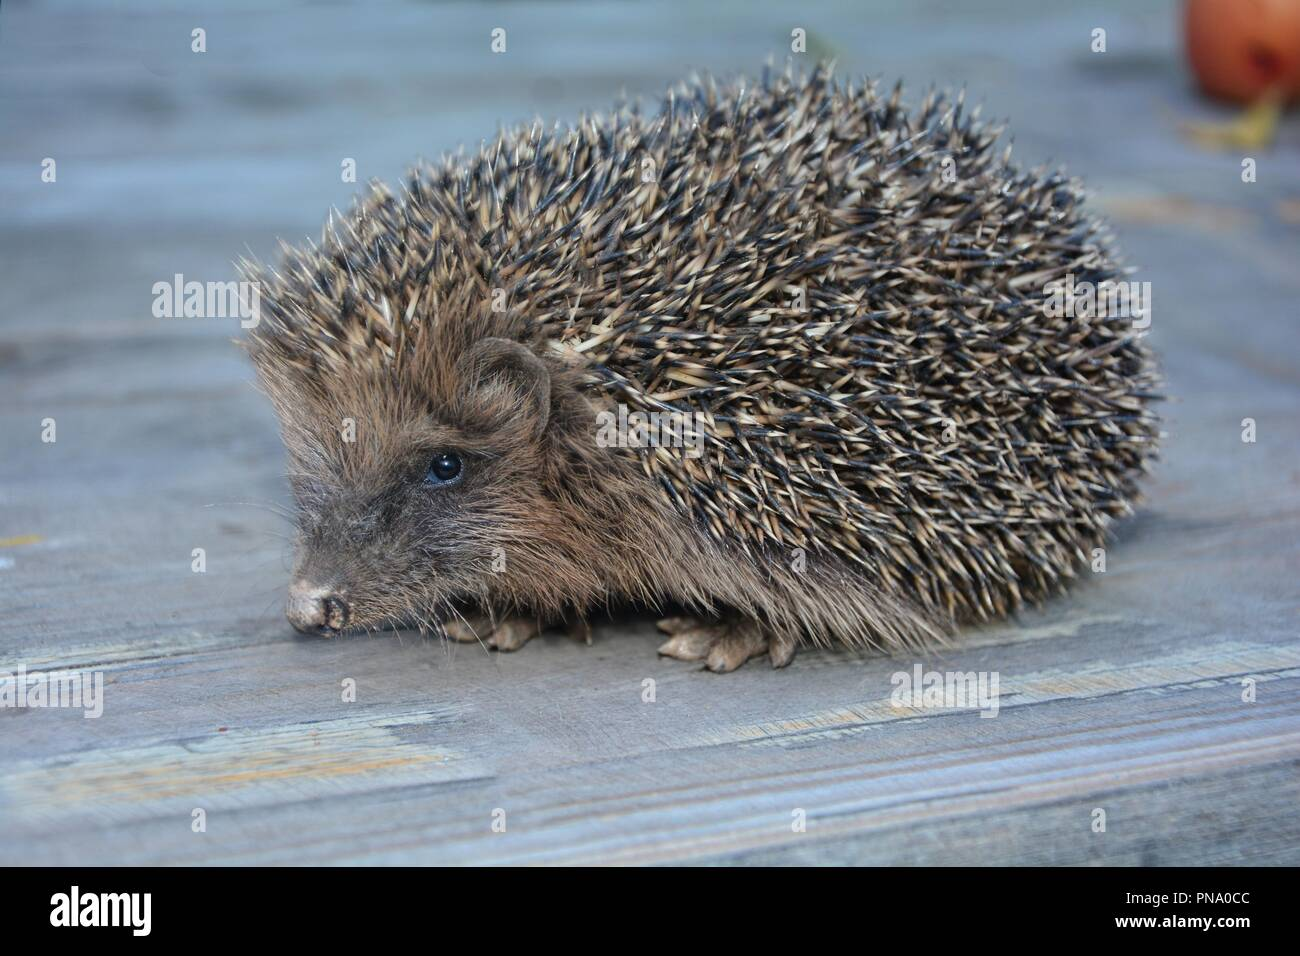 Hedgehog from the side on wood - Stock Image